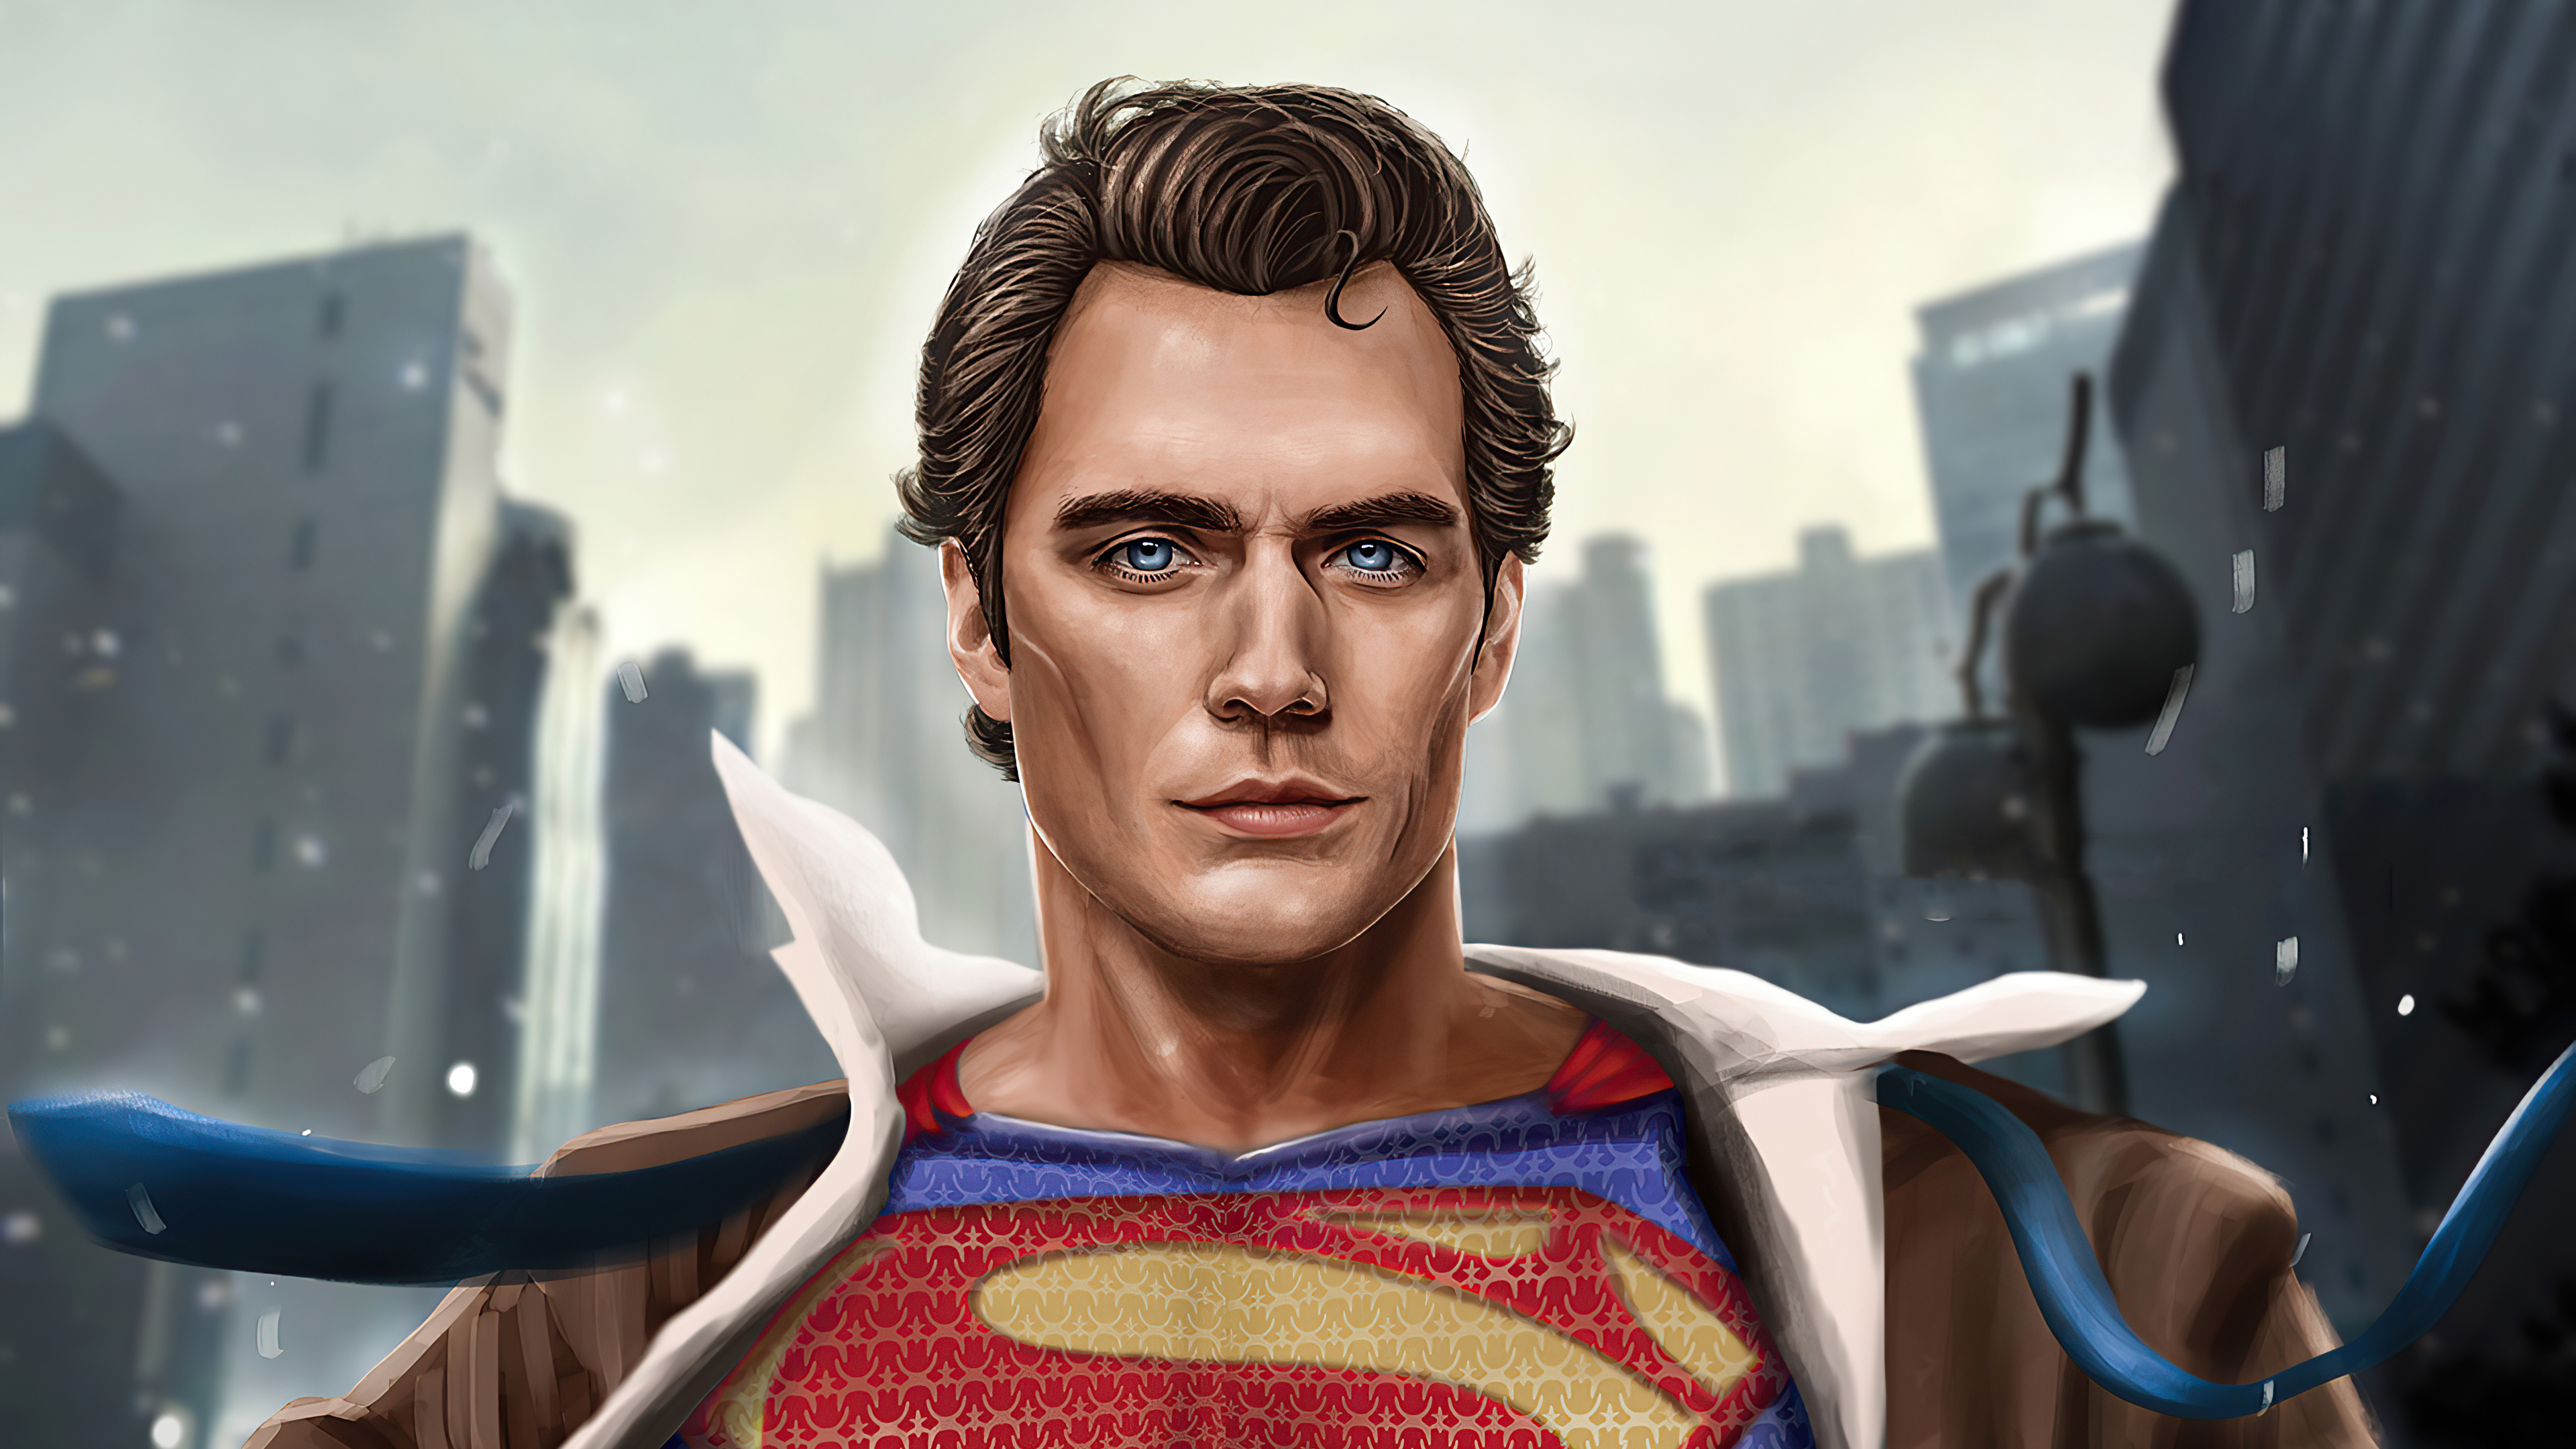 Wallpaper Henry Cavill as Superman 2020 Fanart